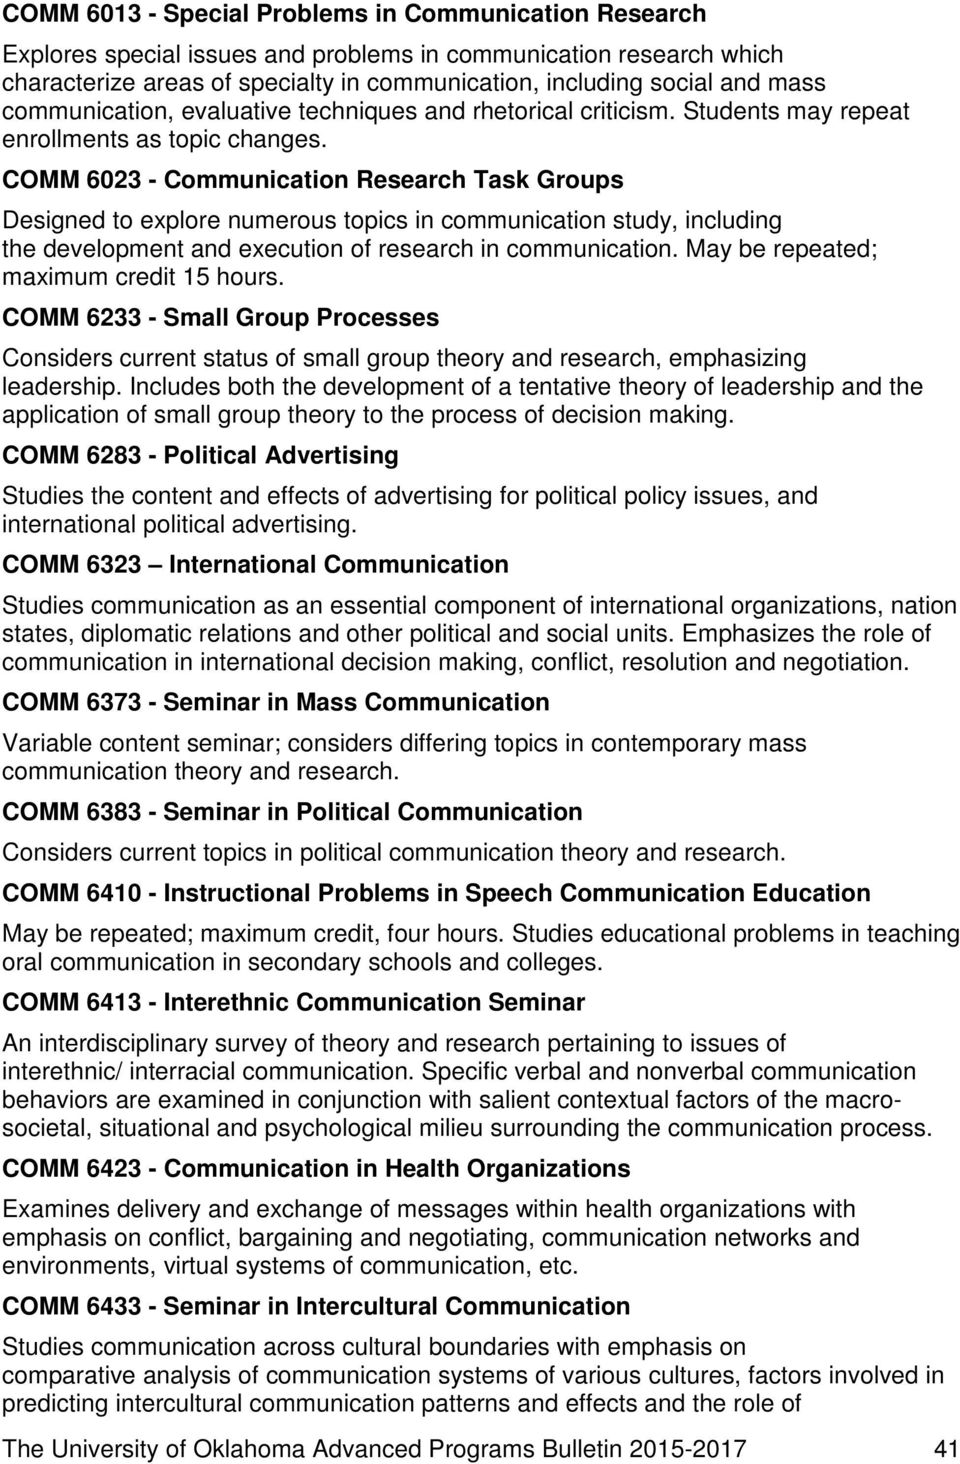 COMM 6023 - Communication Research Task Groups Designed to explore numerous topics in communication study, including the development and execution of research in communication.